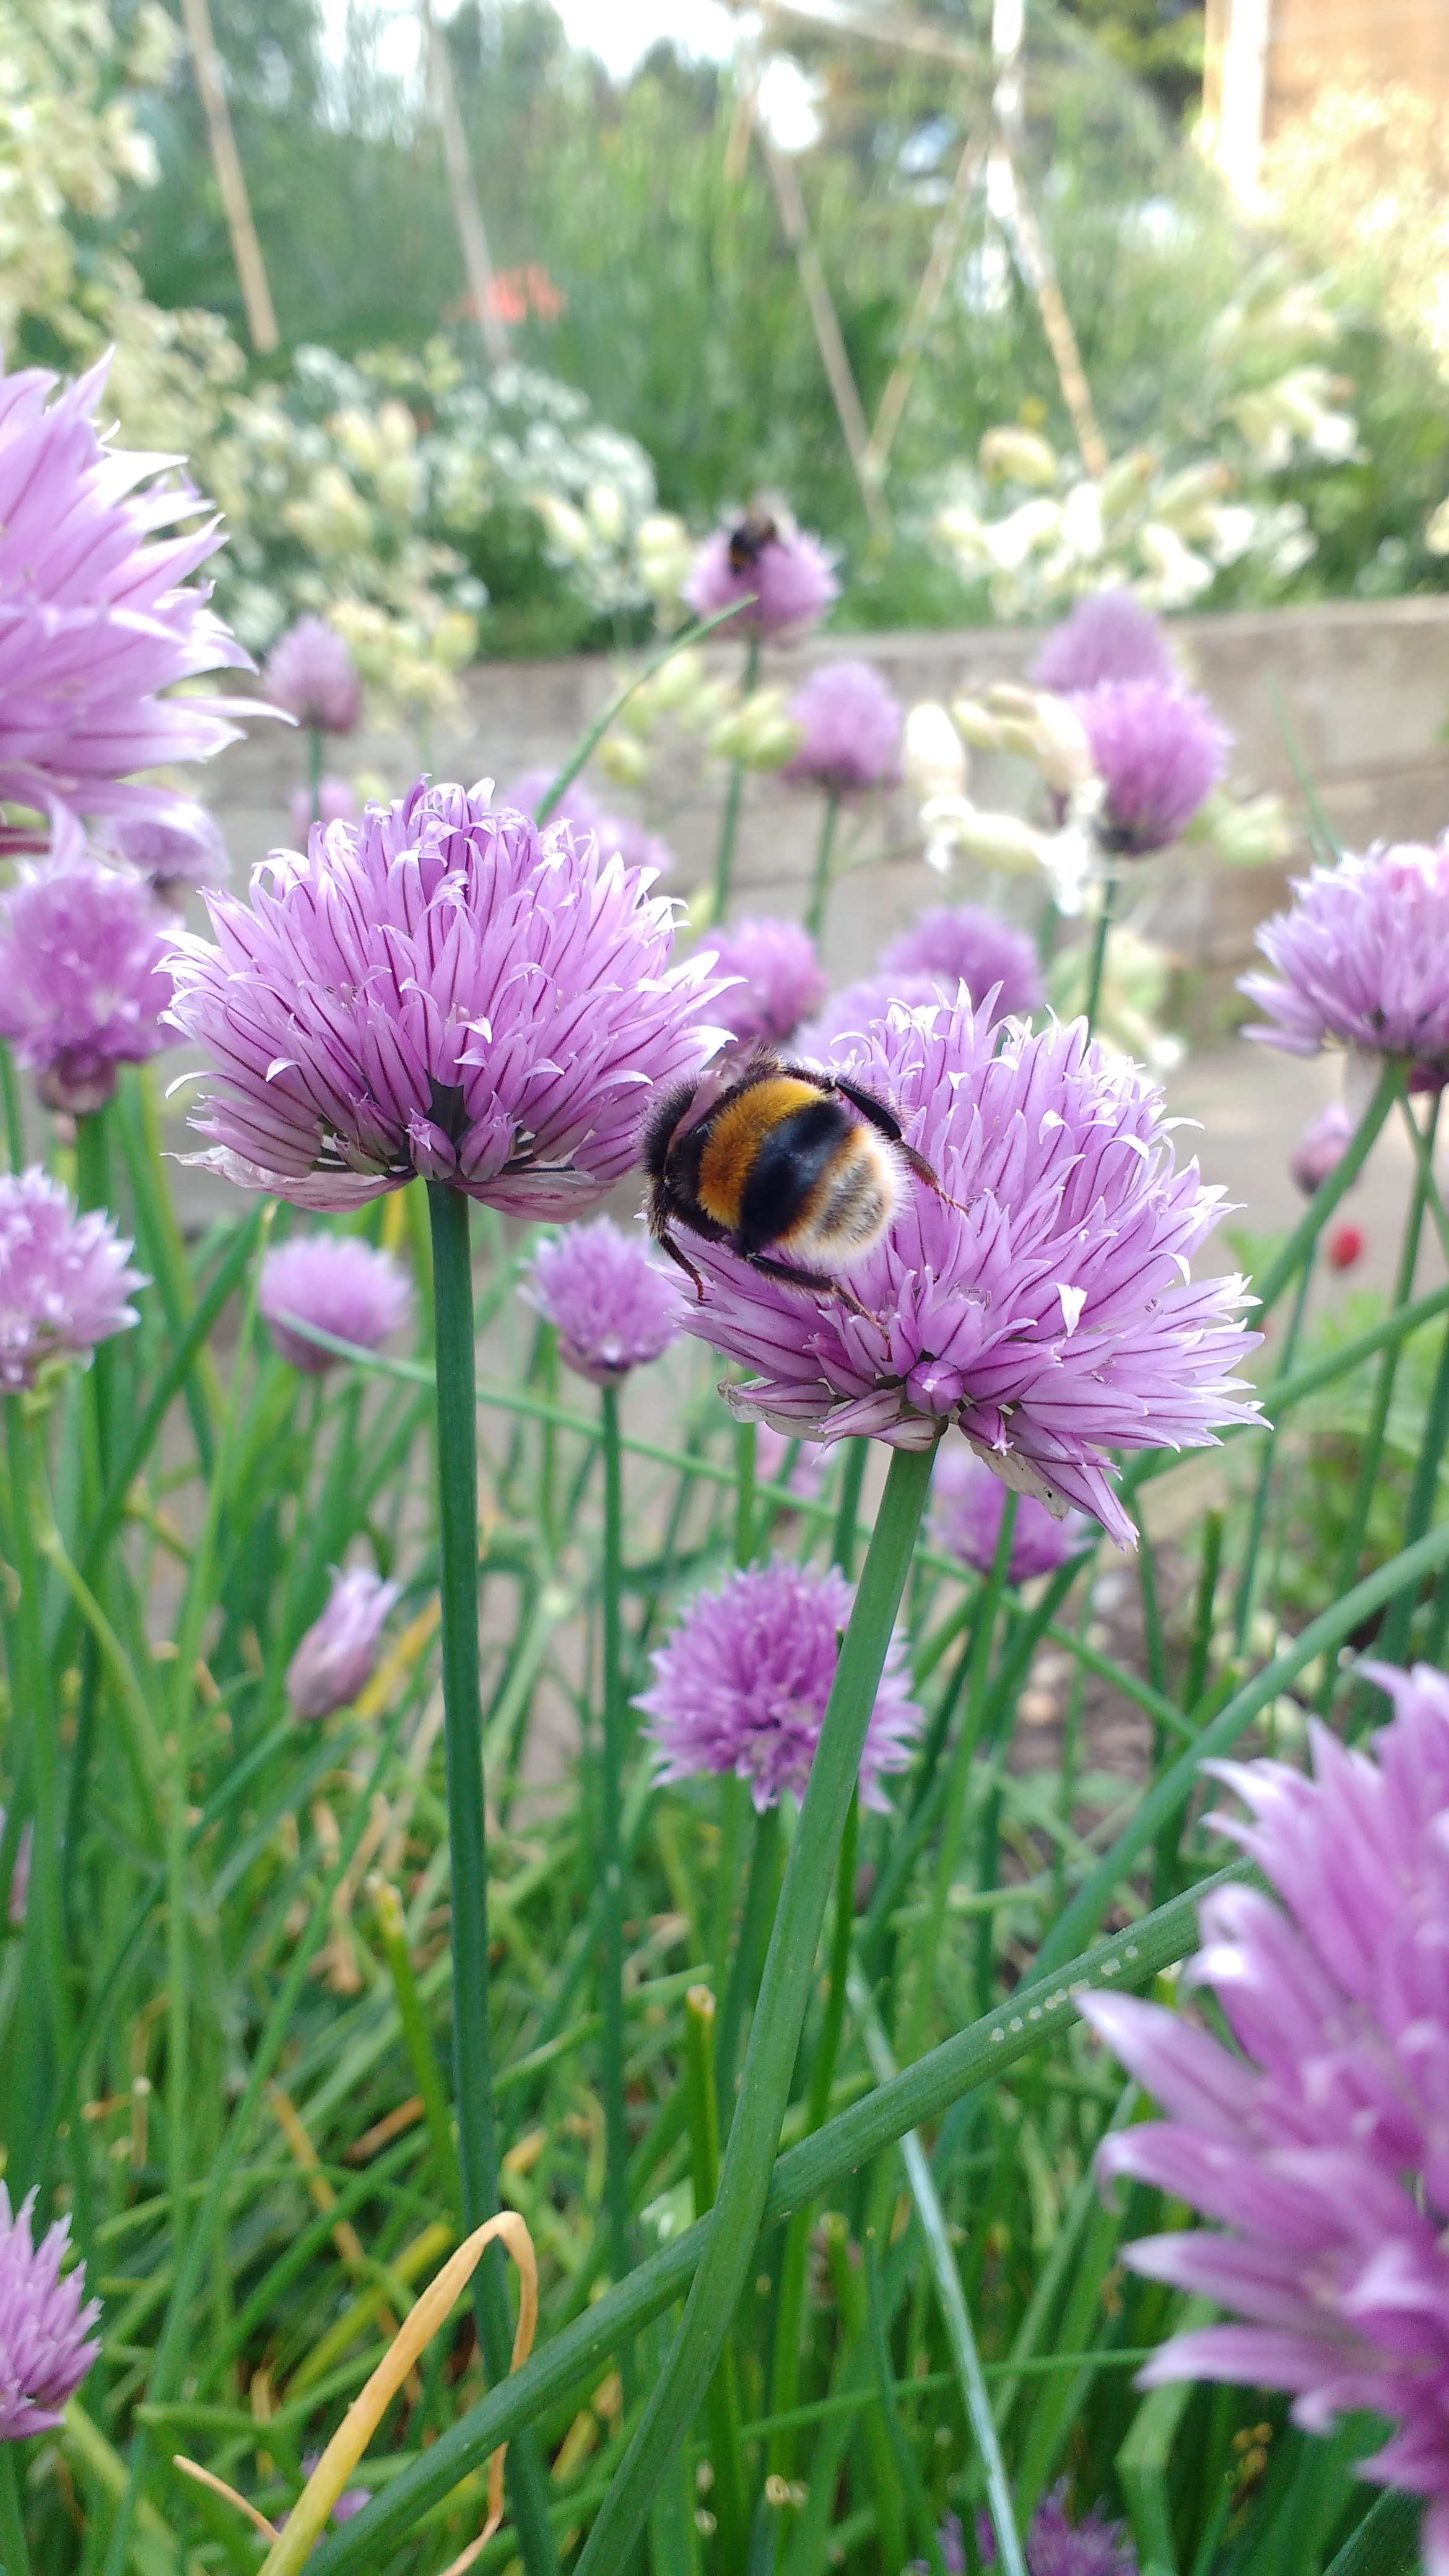 Flower_insect_chives_bumblebee (1).jpg